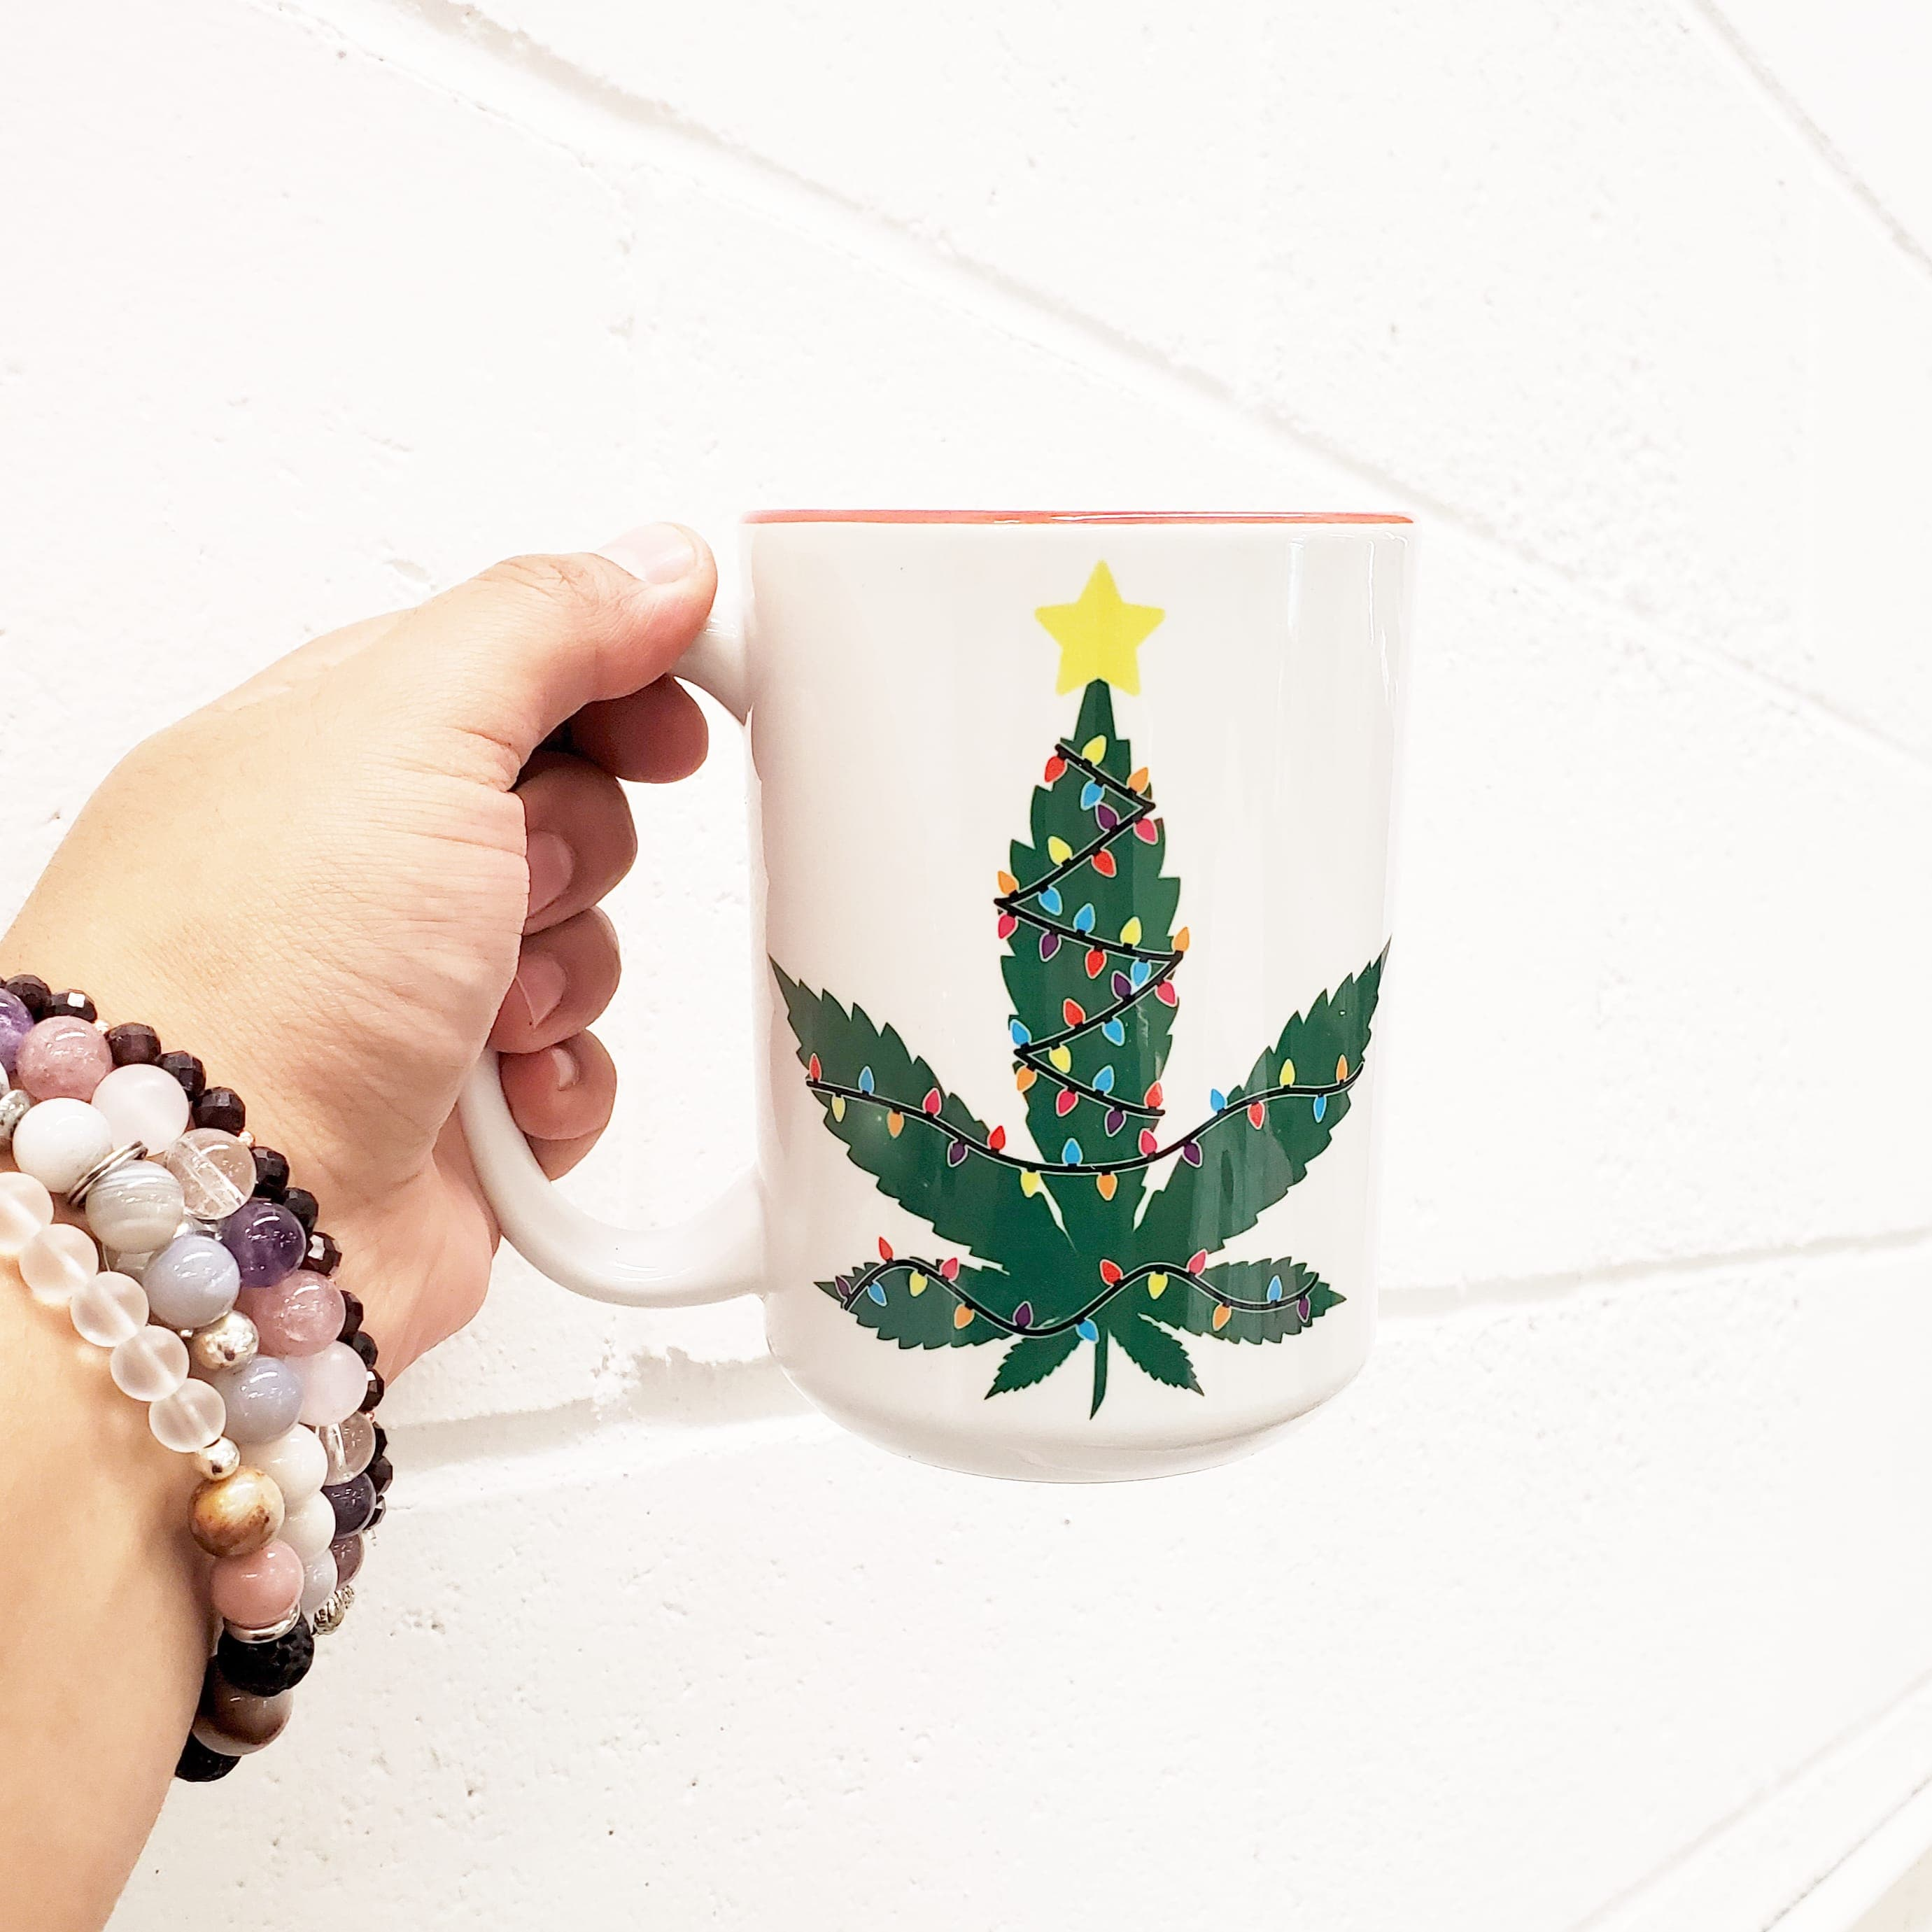 Mei Designs, Mei design mugs, custom mug, custom design mugs, permanent ink mugs, funny mugs, truth mugs, inappropriate mug, inappropriate mugs, custom coffee mug, custom tea mug, funny coffee mug, funny tea mug, Christmas Mugs, Christmas Mug, funny Christmas mug,